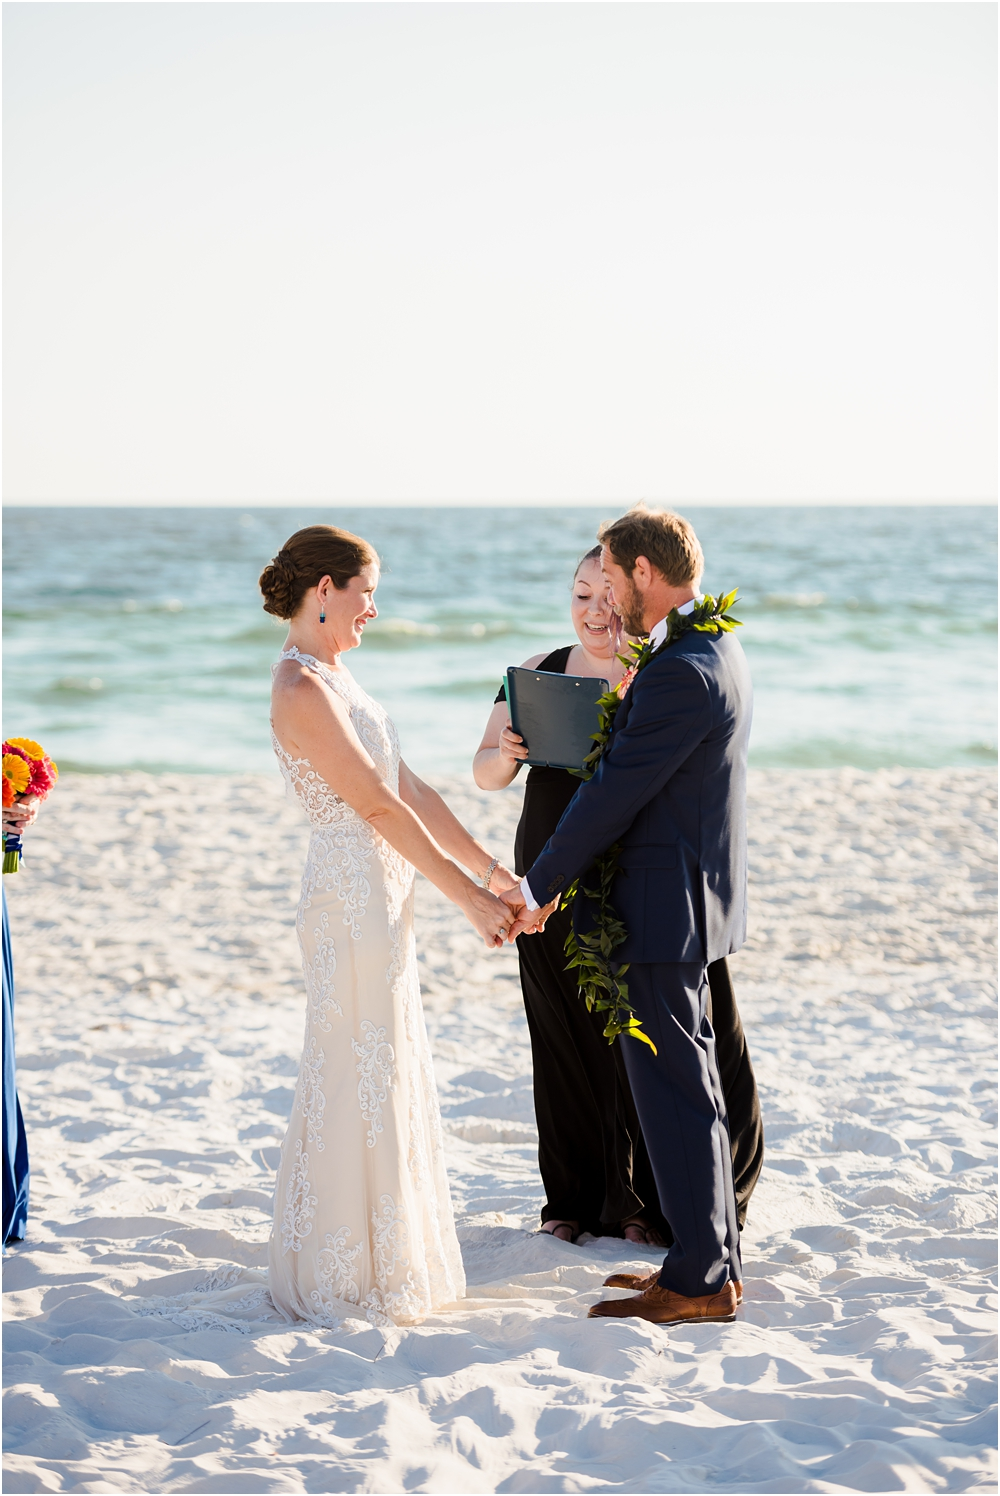 ledman-wedding-kiersten-stevenson-photography-30a-panama-city-beach-dothan-tallahassee-(235-of-763).JPG